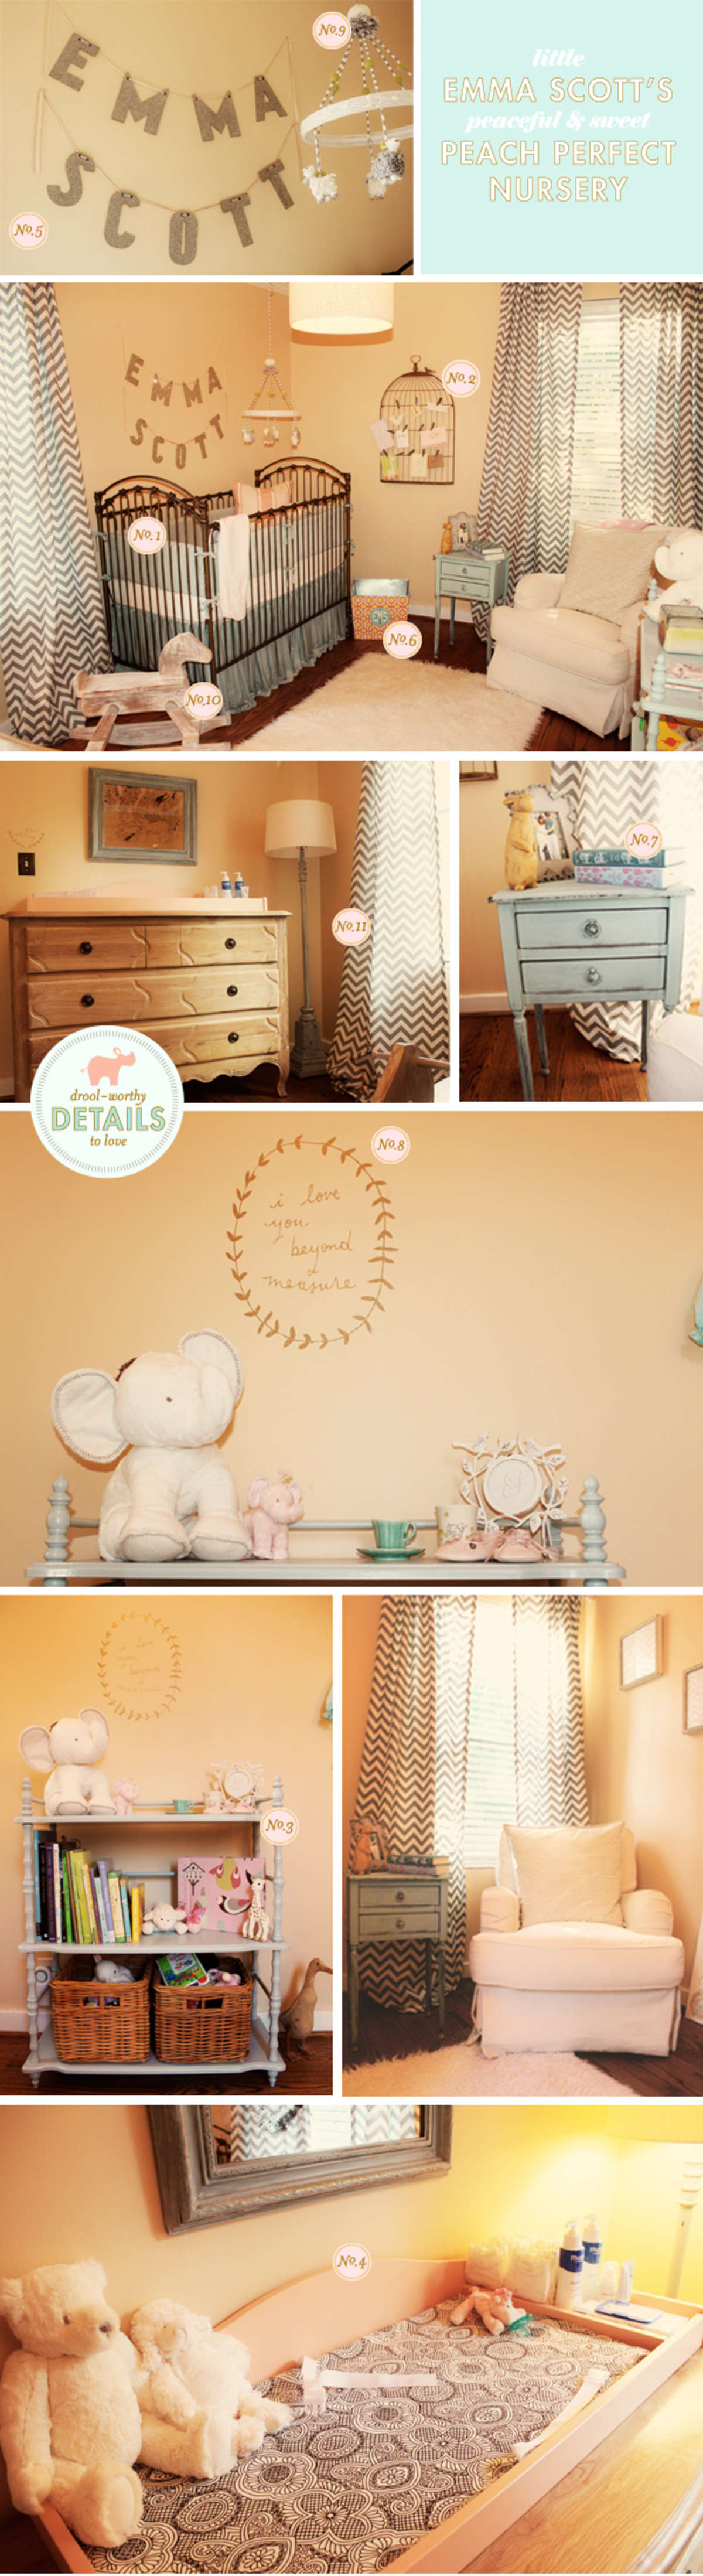 peach and gray baby nursery ideas